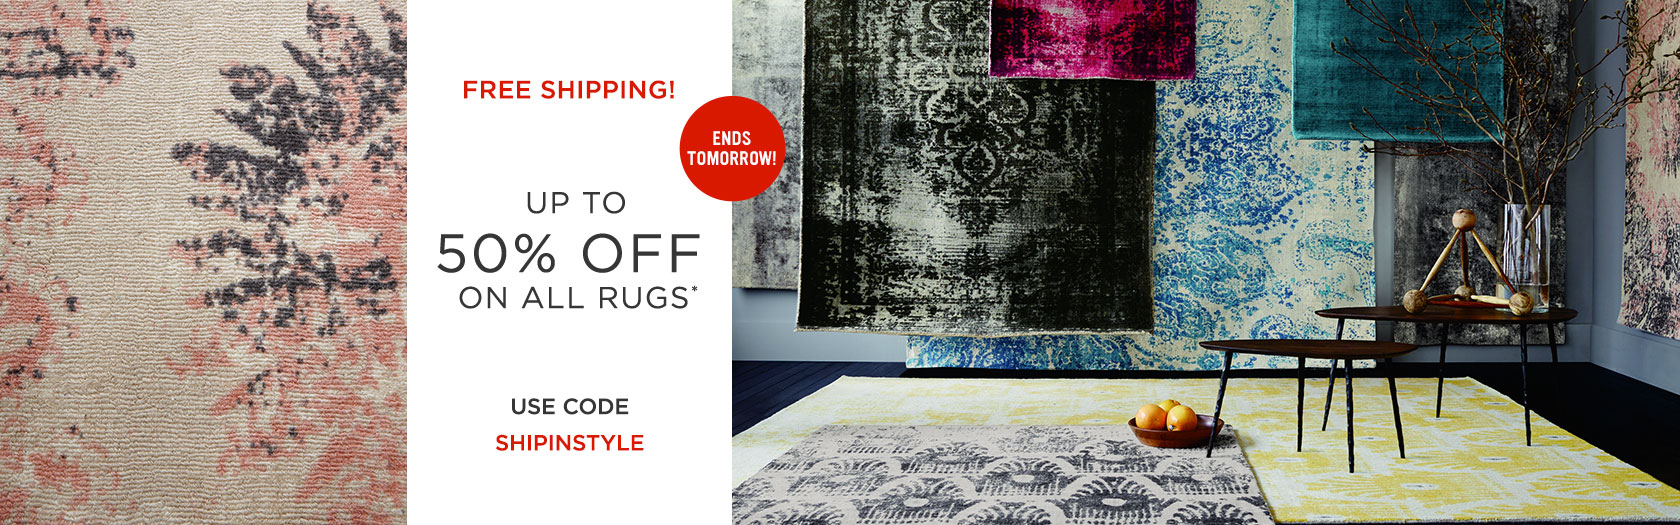 Up To 50 Percent Off All Rugs Plus Free Shipping With Code SHIPINSTYLE